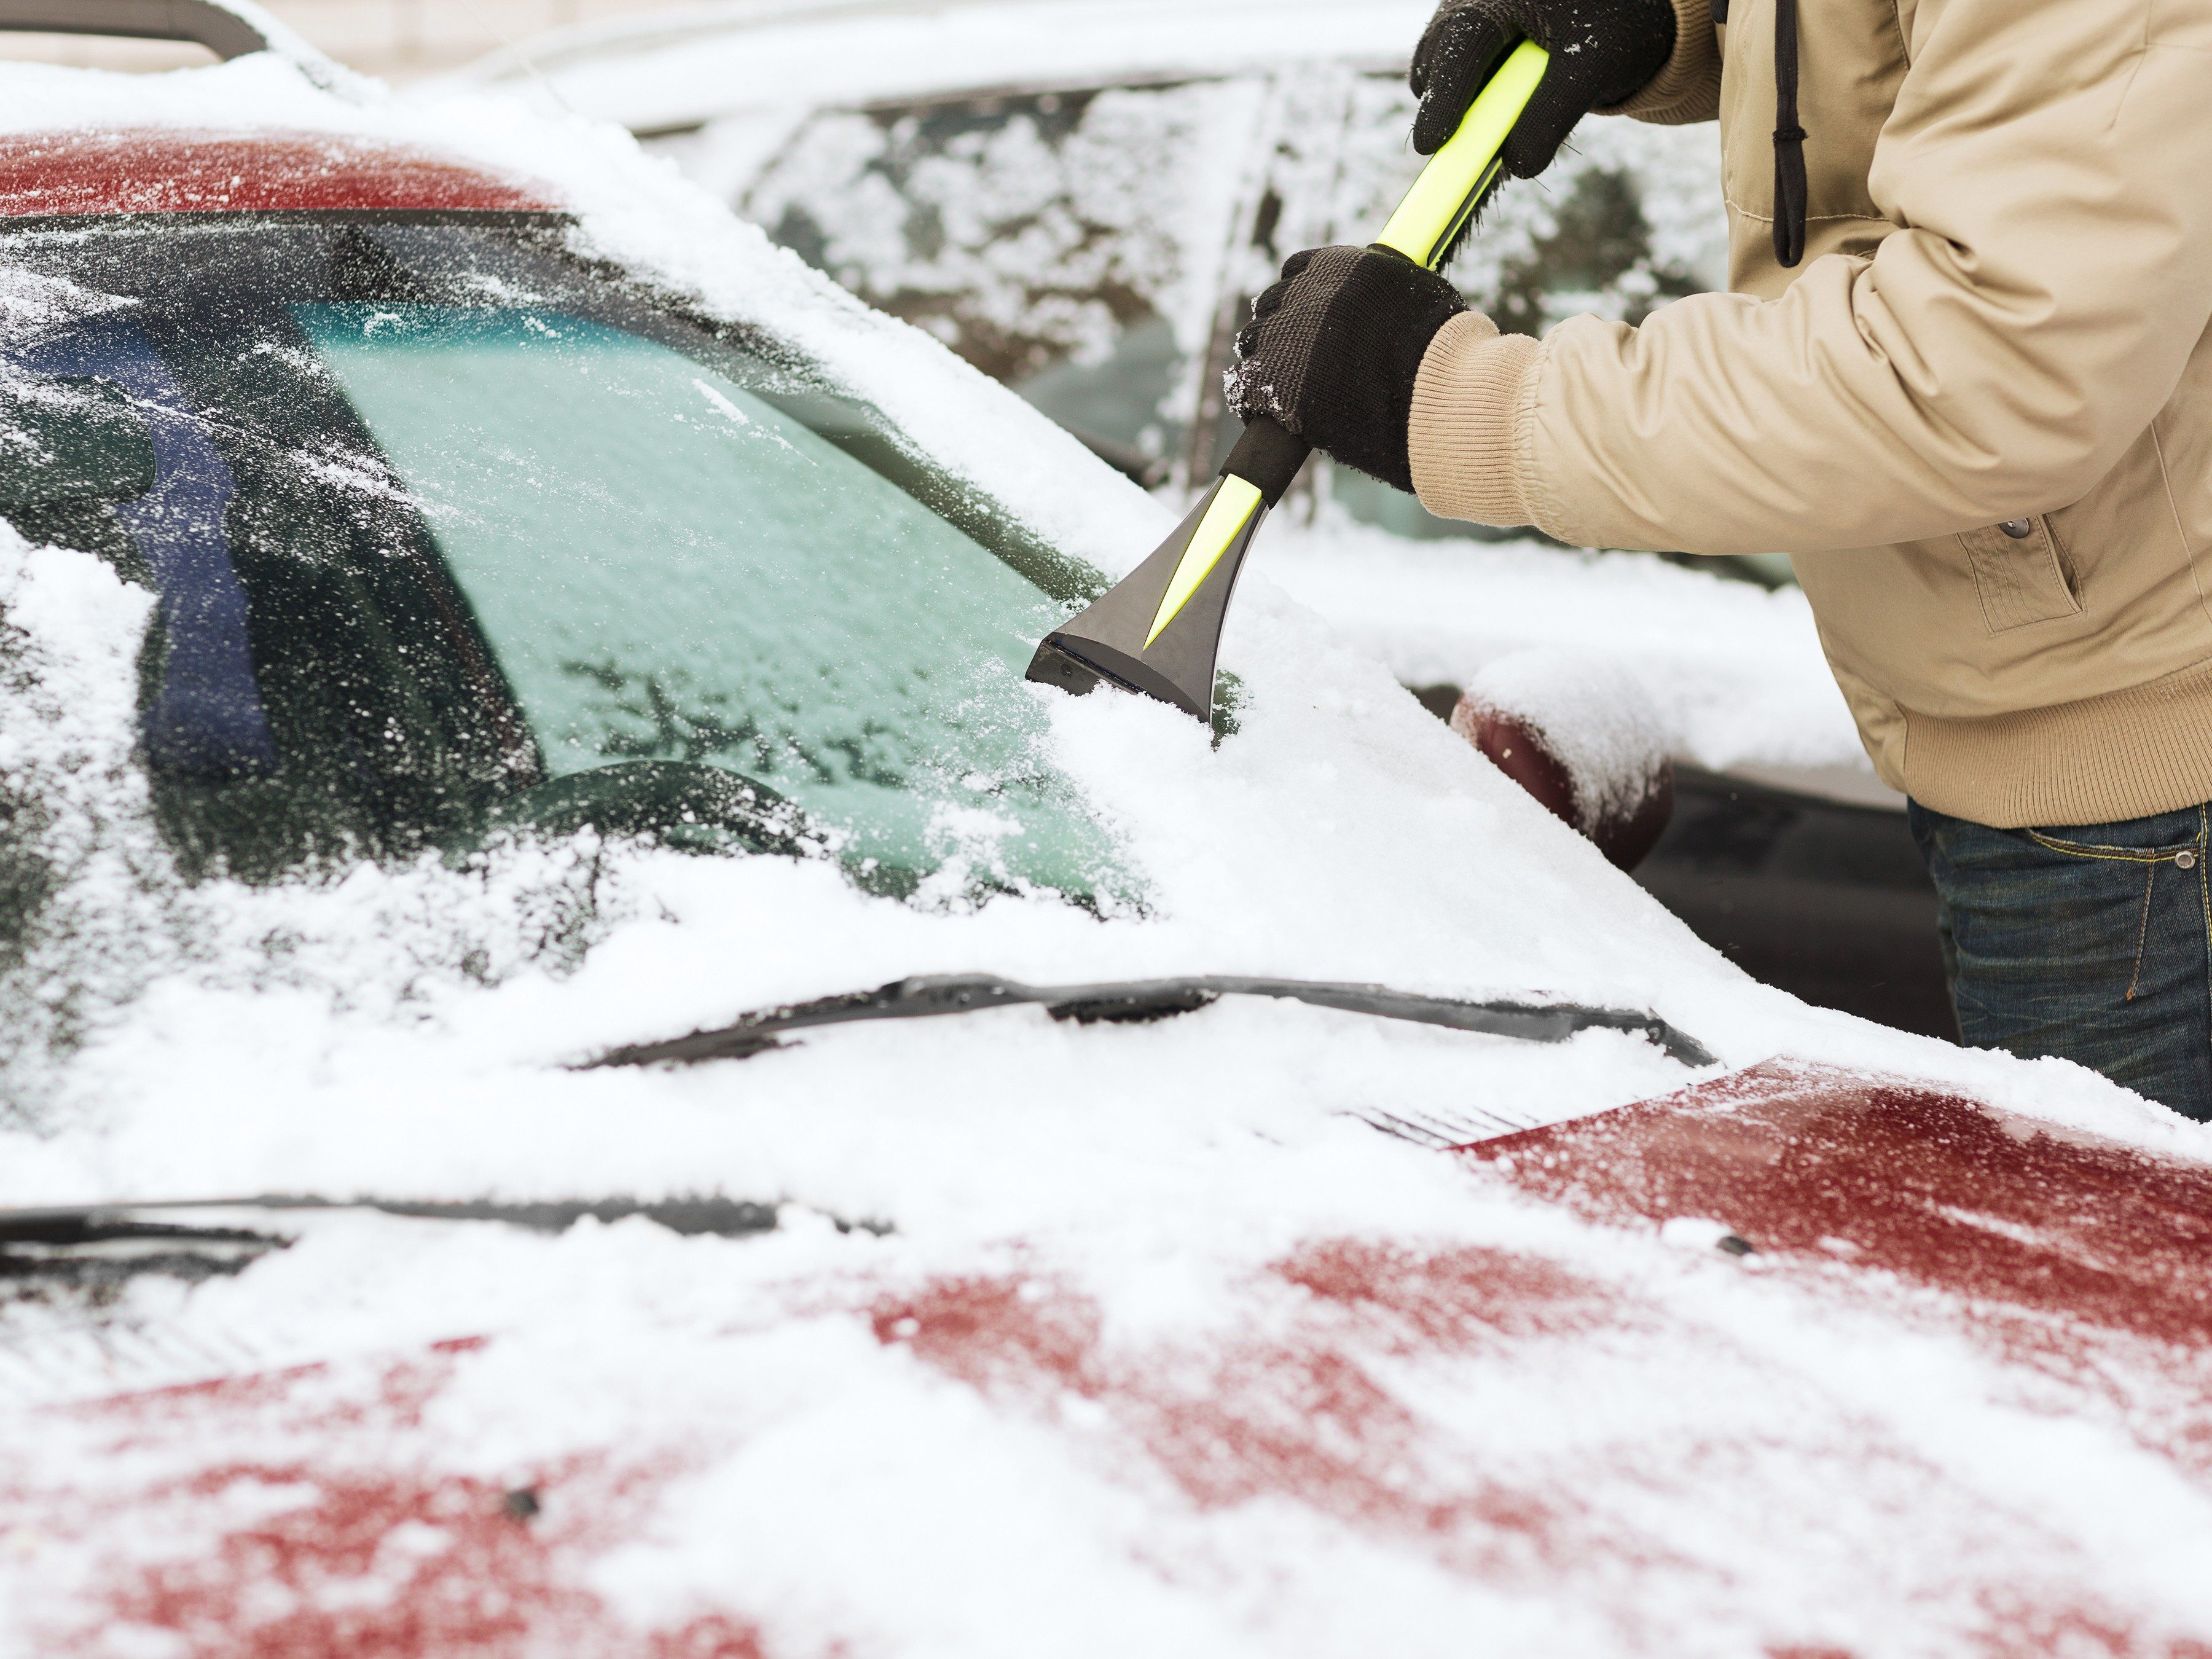 3.Car Windshield Ice Melter